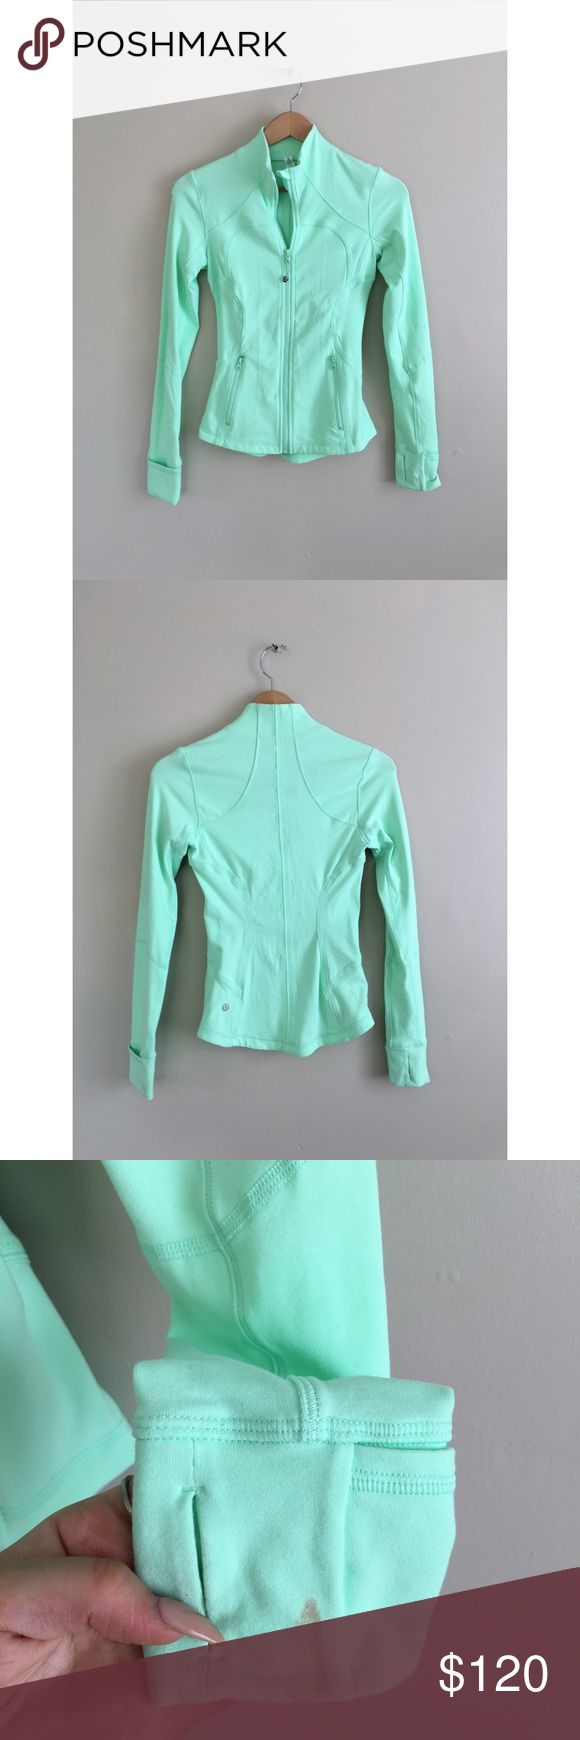 Lululemon mint seafoam define forme jacket blue 2 (❁´◡`❁) ωḙℓḉ✺Պḙ (❁´◡`❁)   Description:  •Gorgeous minty breezy seafoam color •Thumb holes •Very sexy fitted style    ❤️   Brand: Lululemon   Size: 2   Condition: Excellent preowned shape with a small discoloration mark on the arm. Please view photos.   (please refer to all photos Don't hesitate to ask ANY and ALL question before Bidding/Buying)  Ask about combined shipping and discounts! lululemon athletica Jackets & Coats